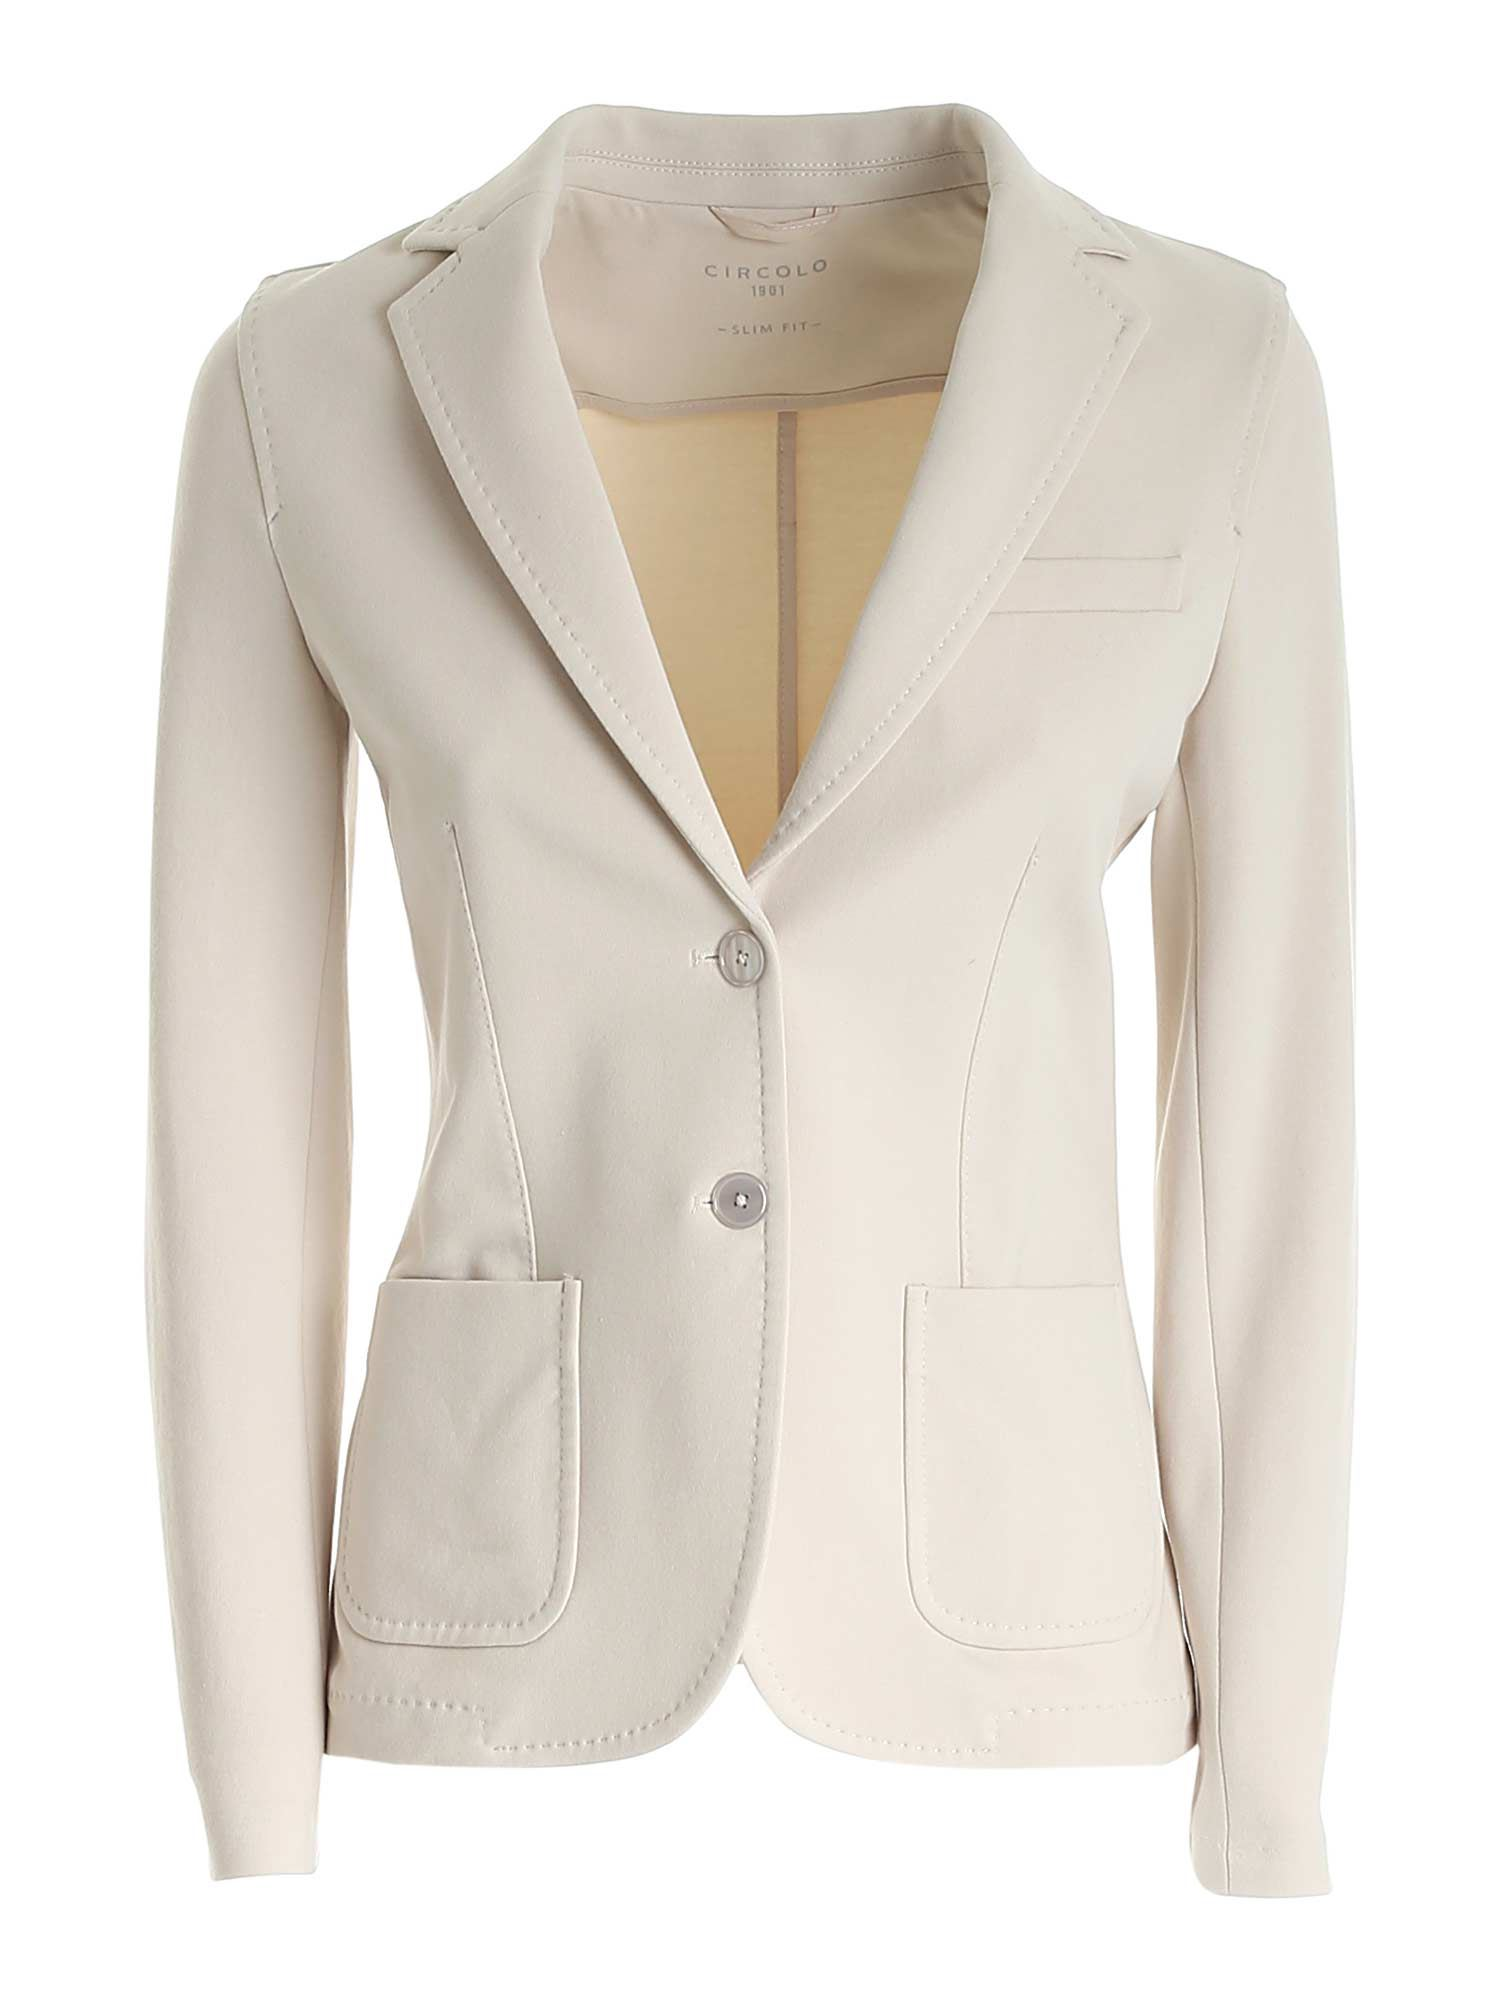 Circolo 1901 SINGLE-BREASTED JACKET IN LIGHT BEIGE